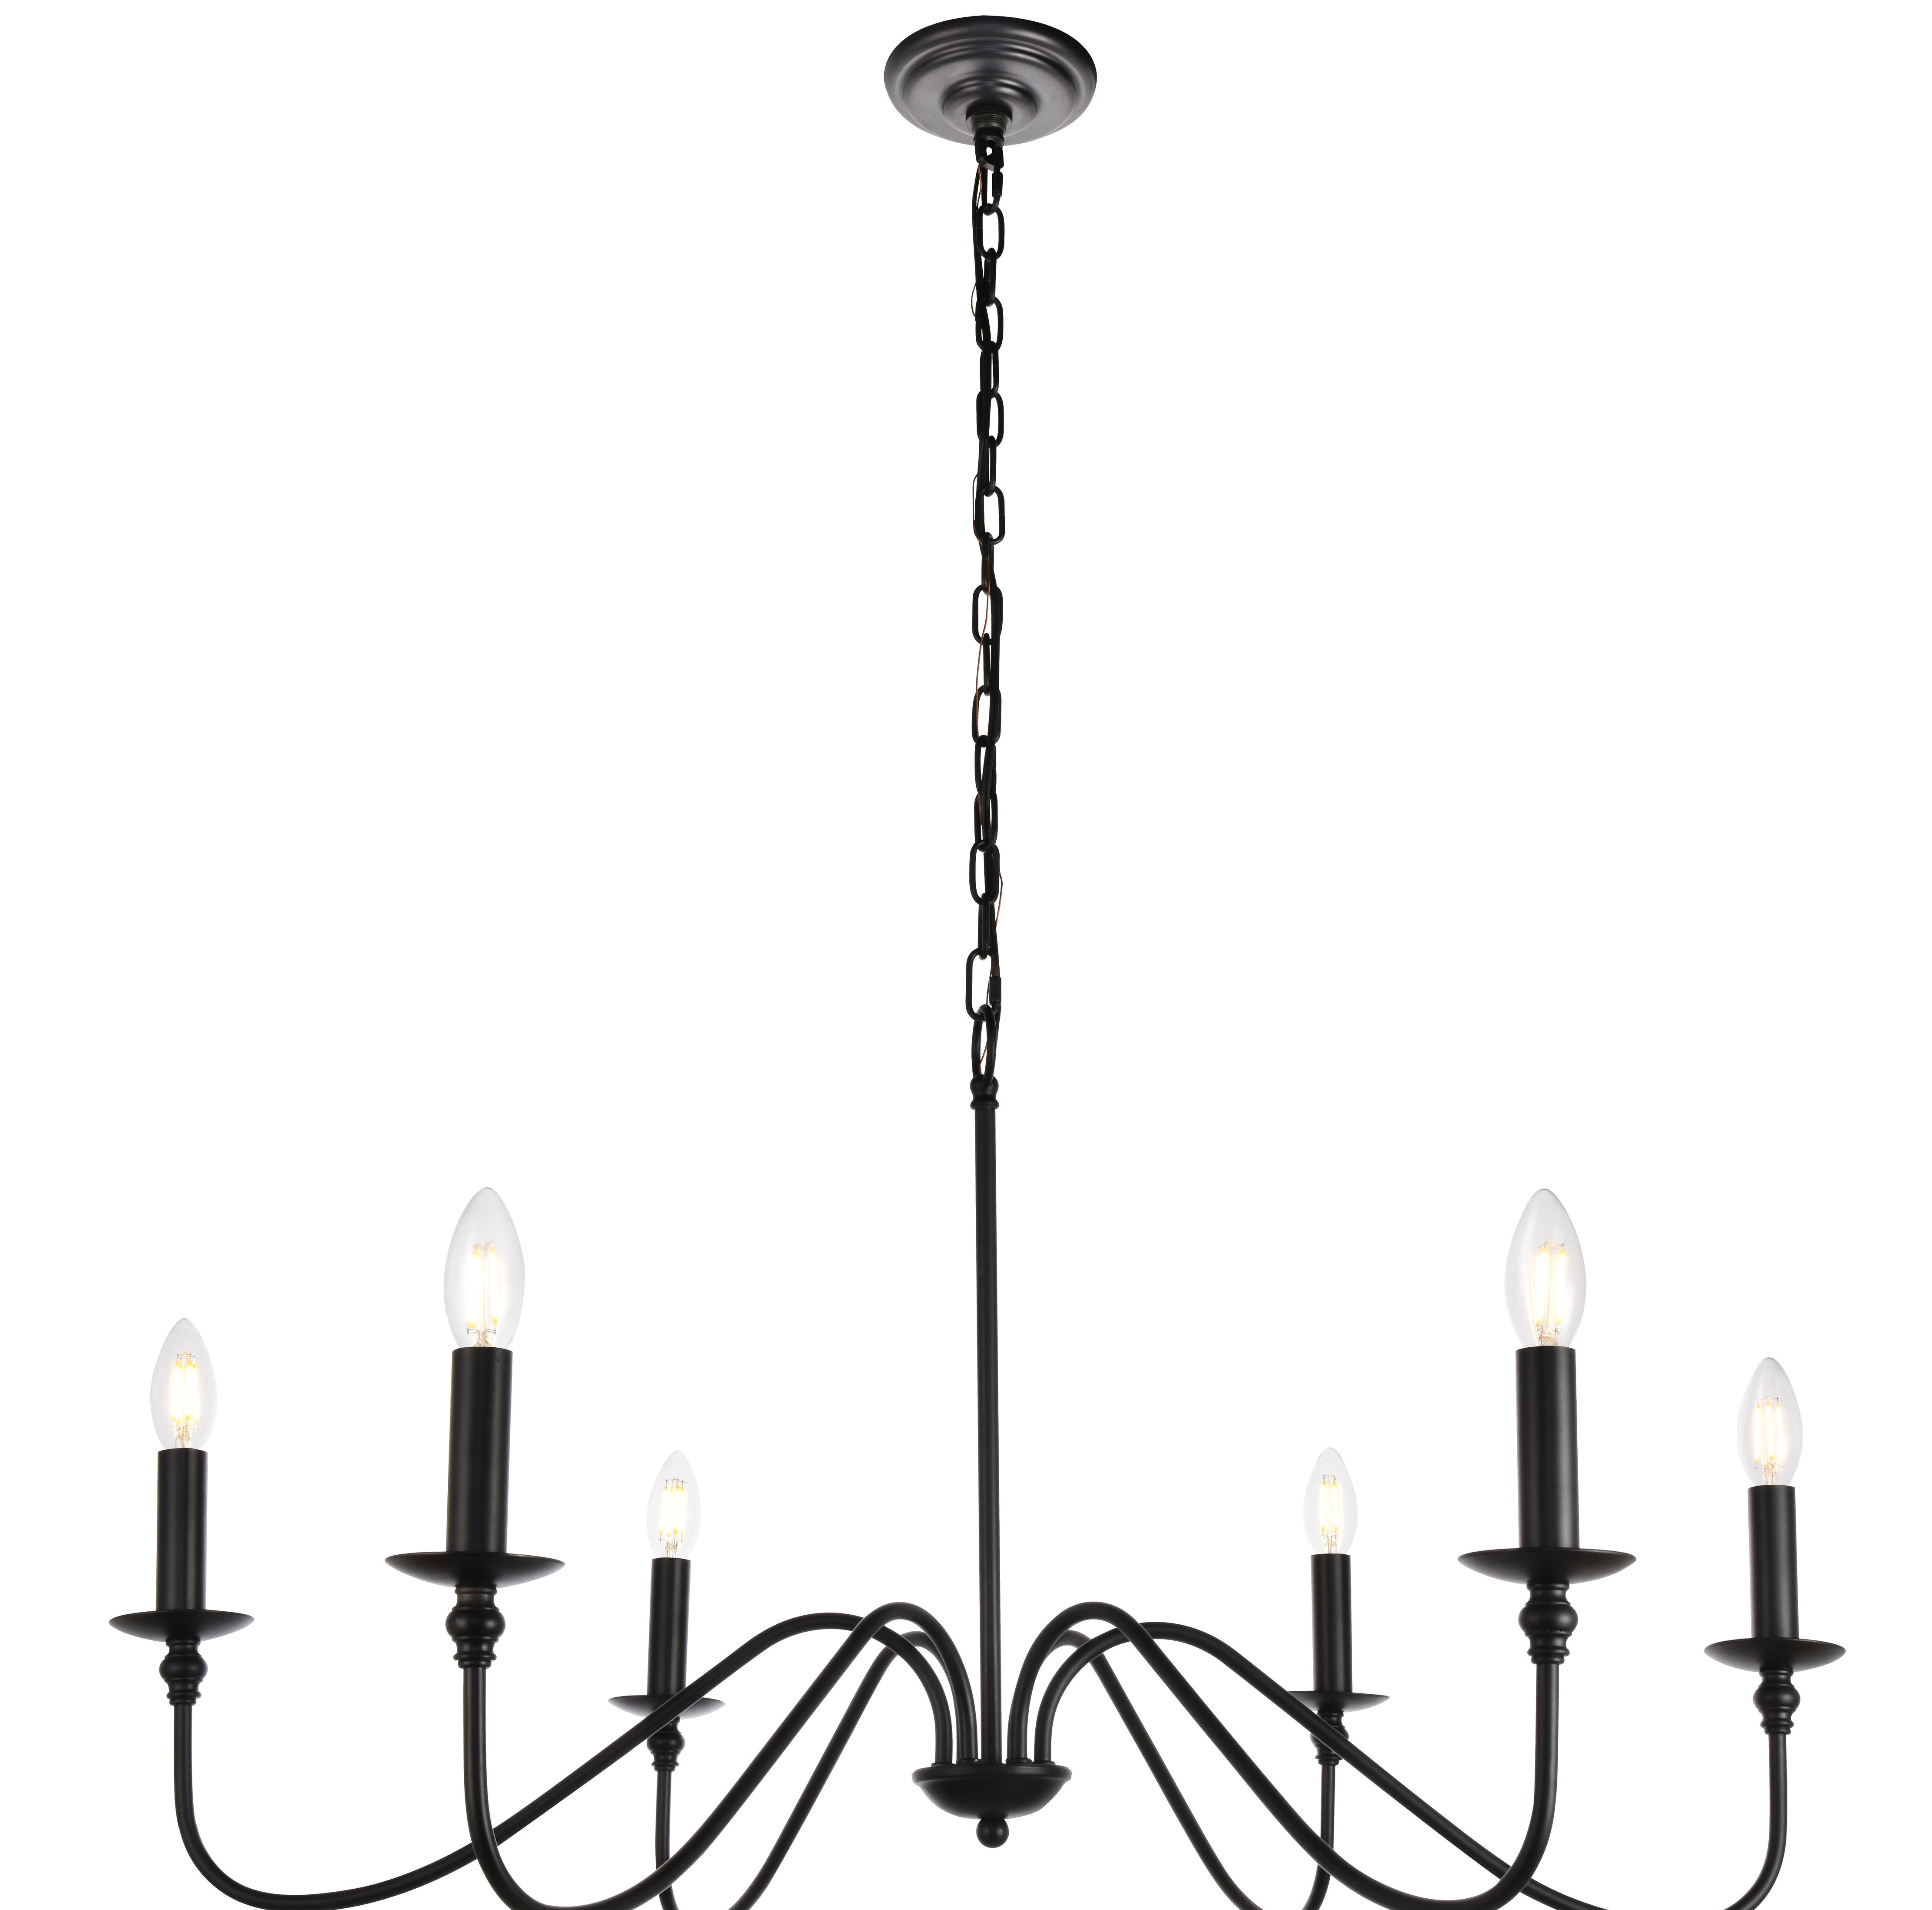 Hamza 6 Light Candle Style Chandelier With Diaz 6 Light Candle Style Chandeliers (View 13 of 30)